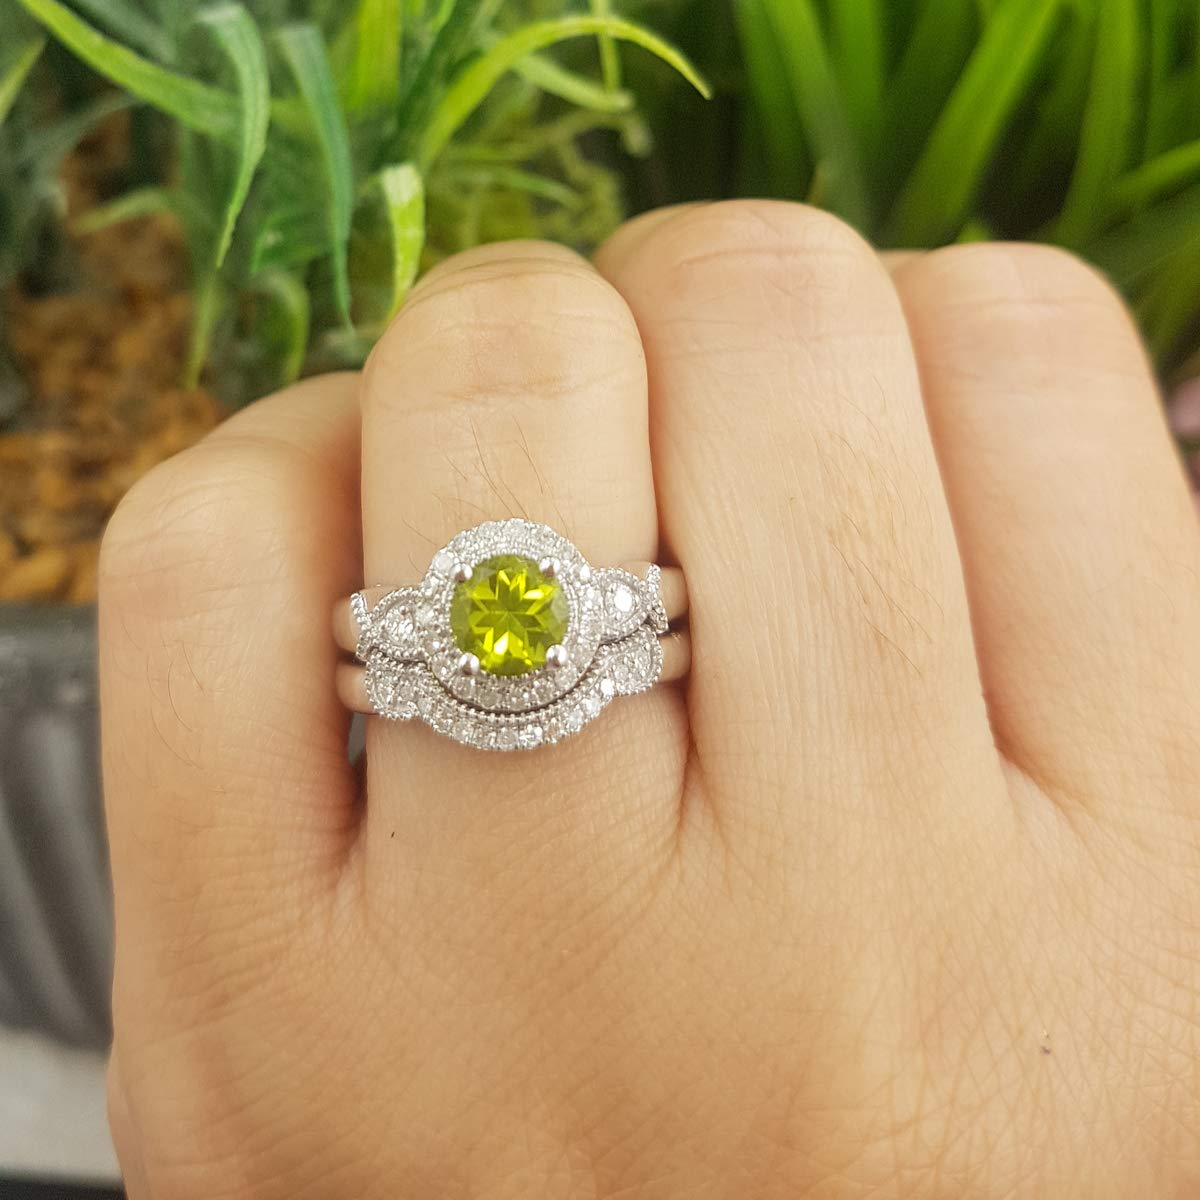 Dazzlingrock Collection 10K 6 MM Round Peridot & White Diamond Ladies Halo Engagement Ring Set, White Gold, Size 8 by Dazzlingrock Collection (Image #6)